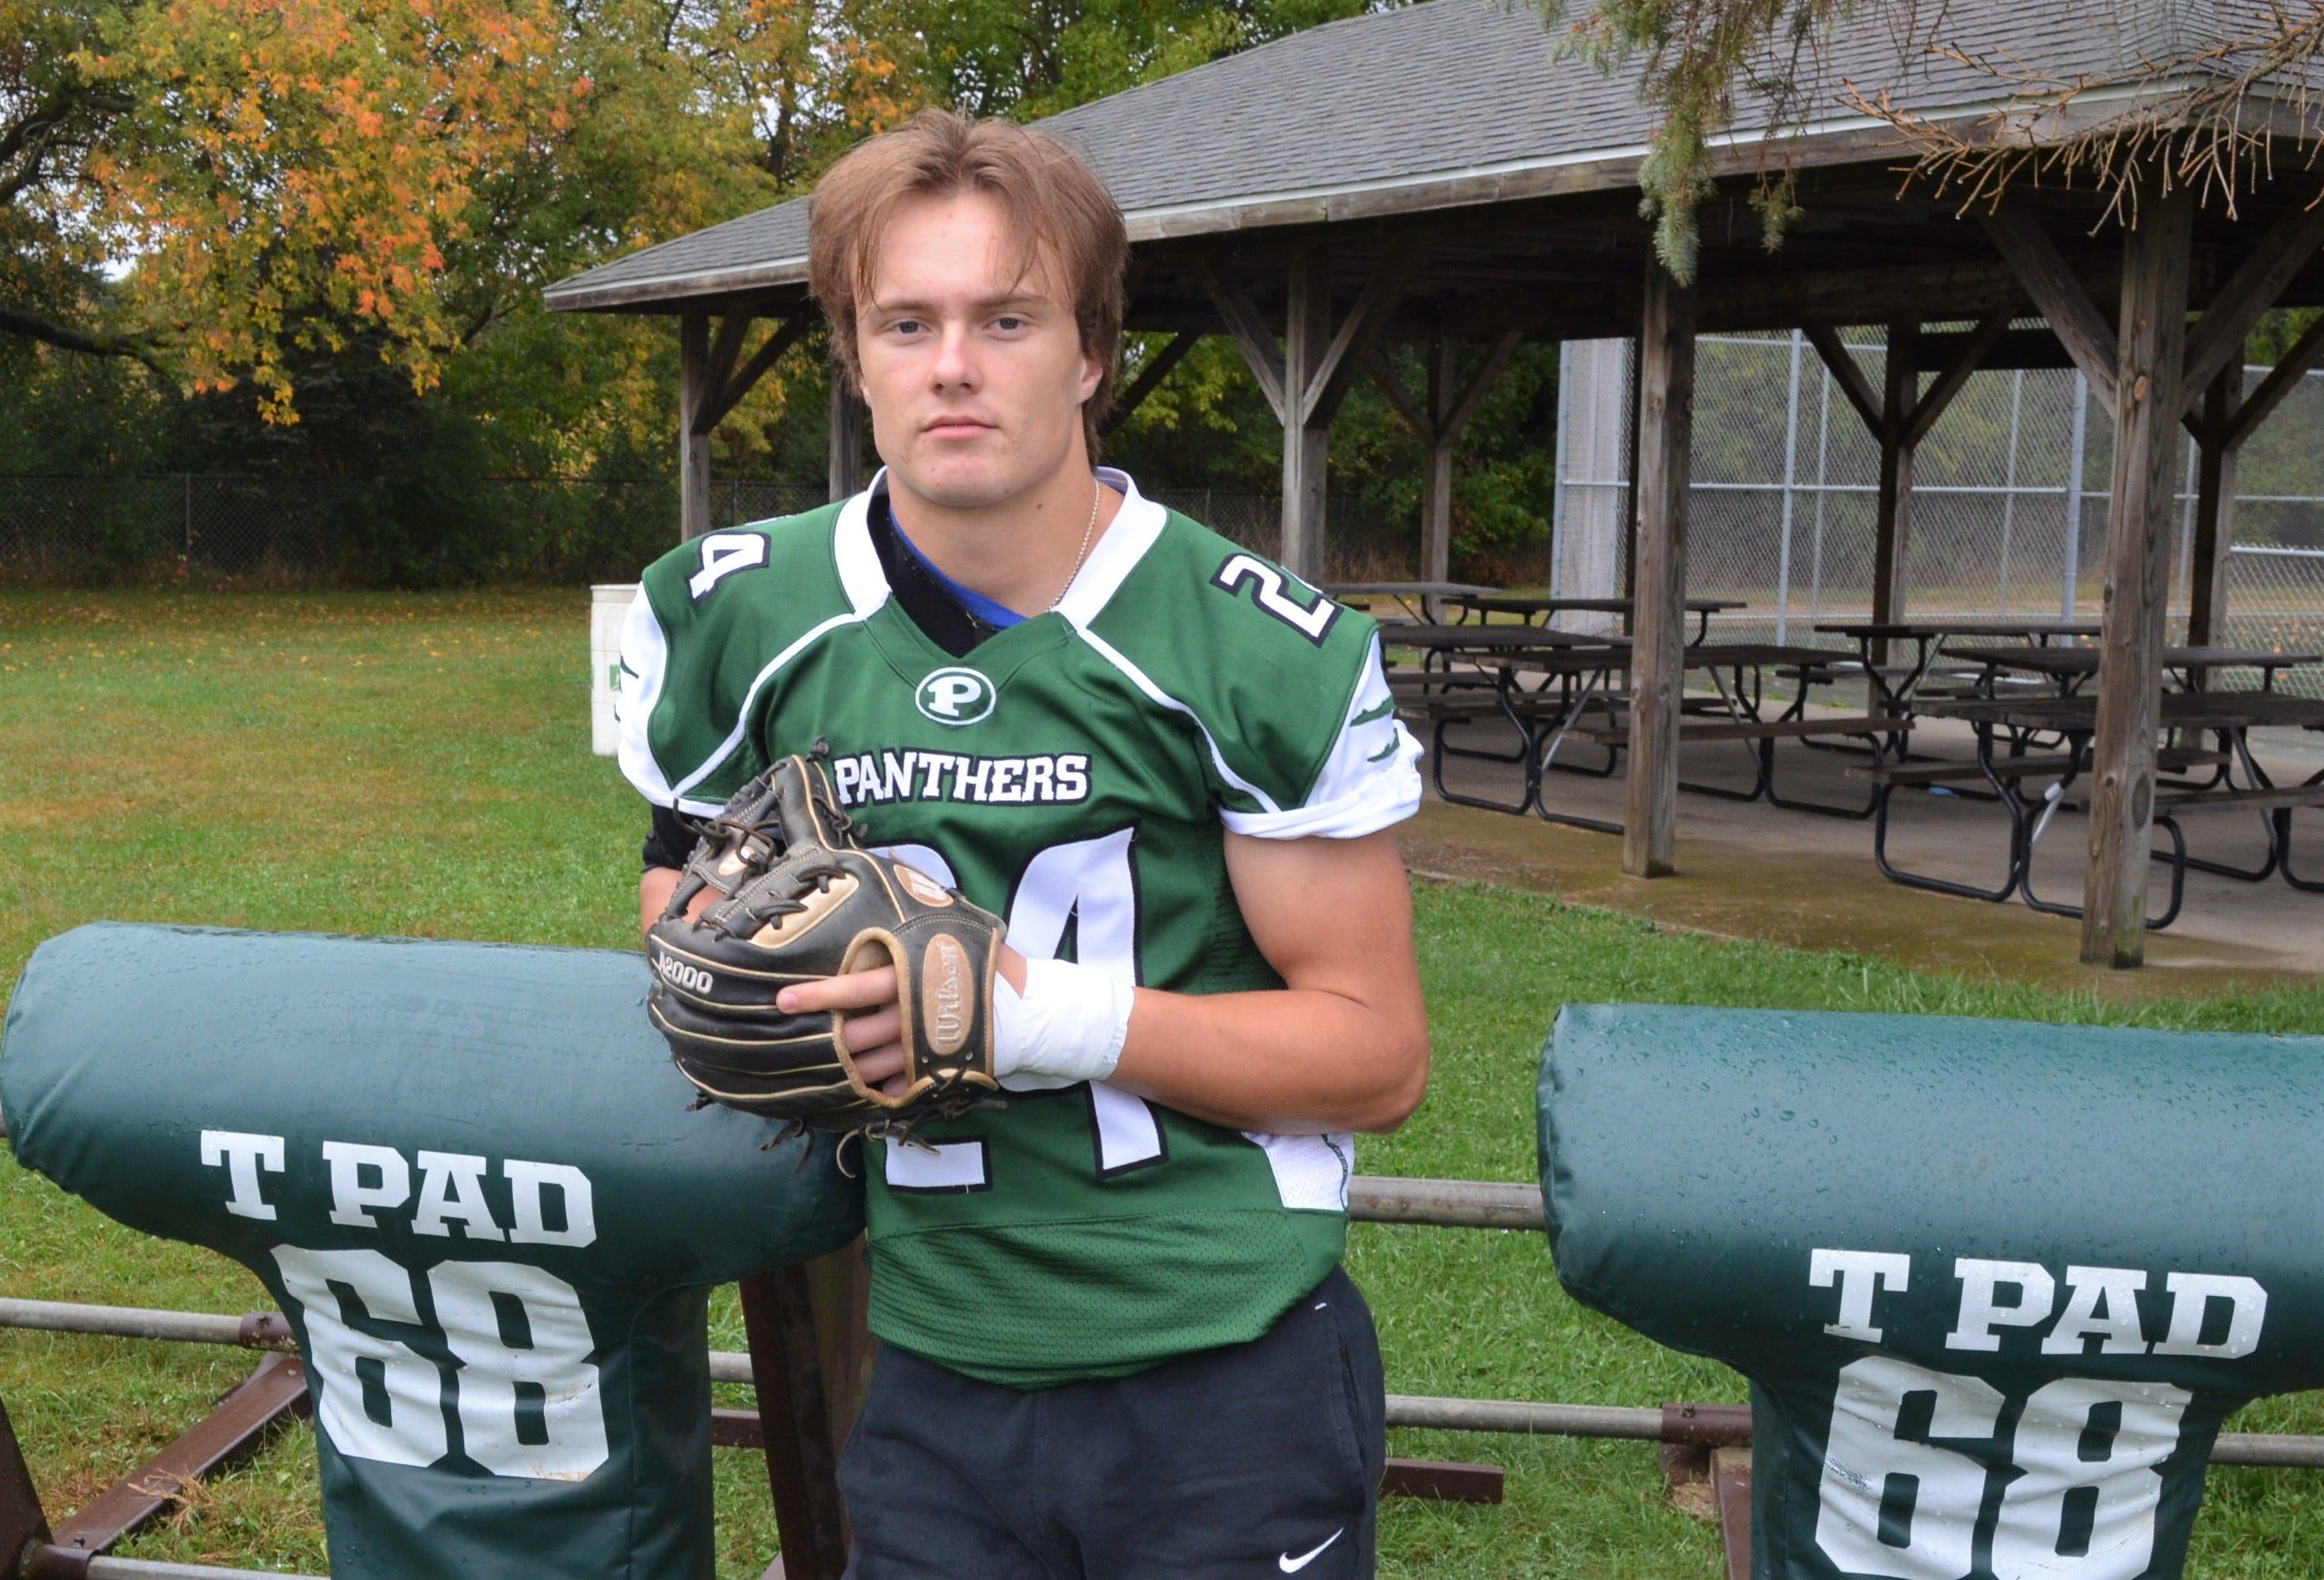 Set To Play Baseball At U M Pennfield S Hultink Shines In Football